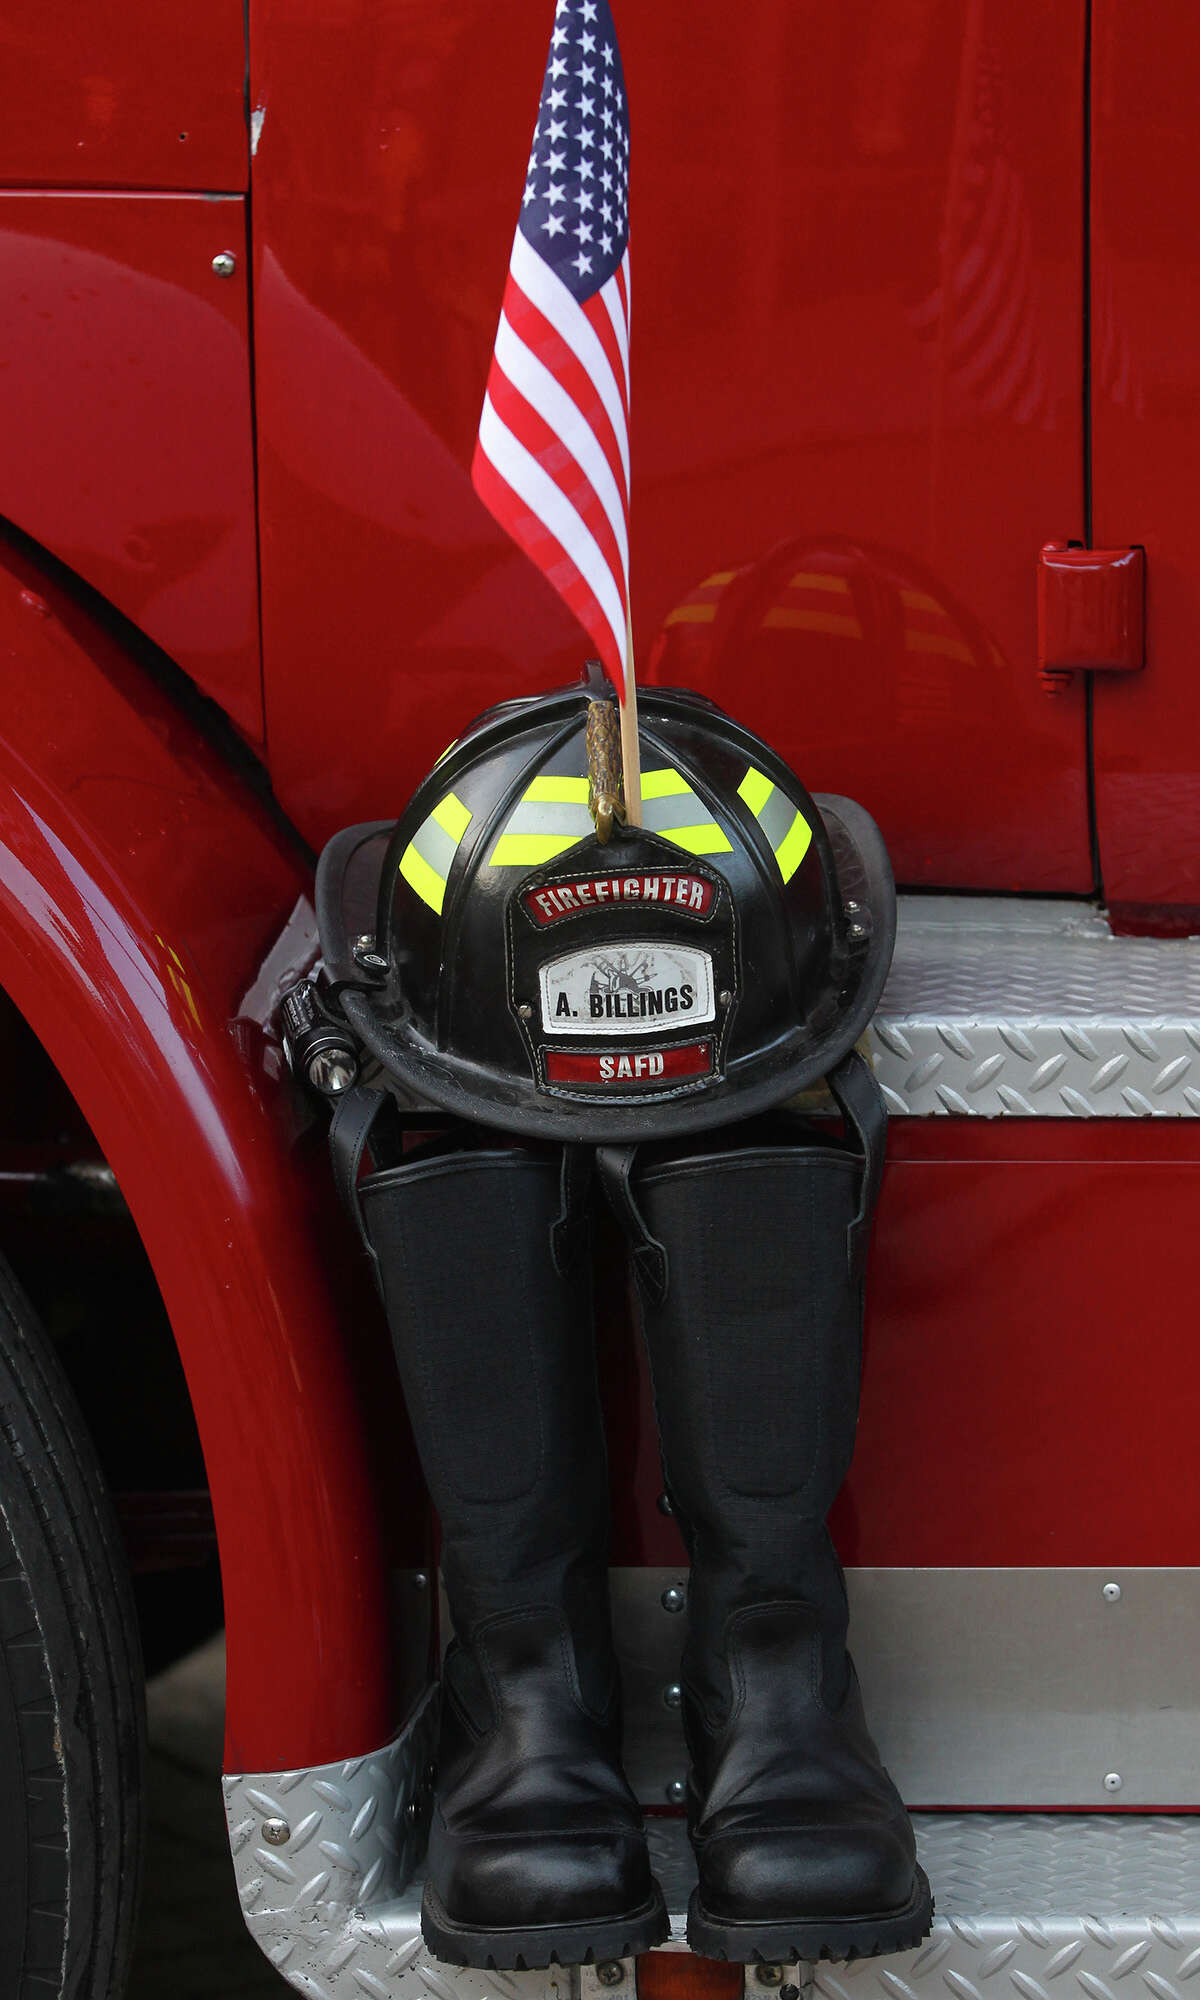 A pair of boots and a firefighter's head gear is displayed at the Tower of the Americas Wednesday September 11, 2013 during the San Antonio 110 9/11 Memorial Climb. Firefighters, law enforcement officers and others gathered there to honor and remember those who perished at the terrorist tragedies in New York, Pennsylvania and Washington 12 years ago. Most firefighters at the event made the climb in full bunker gear.